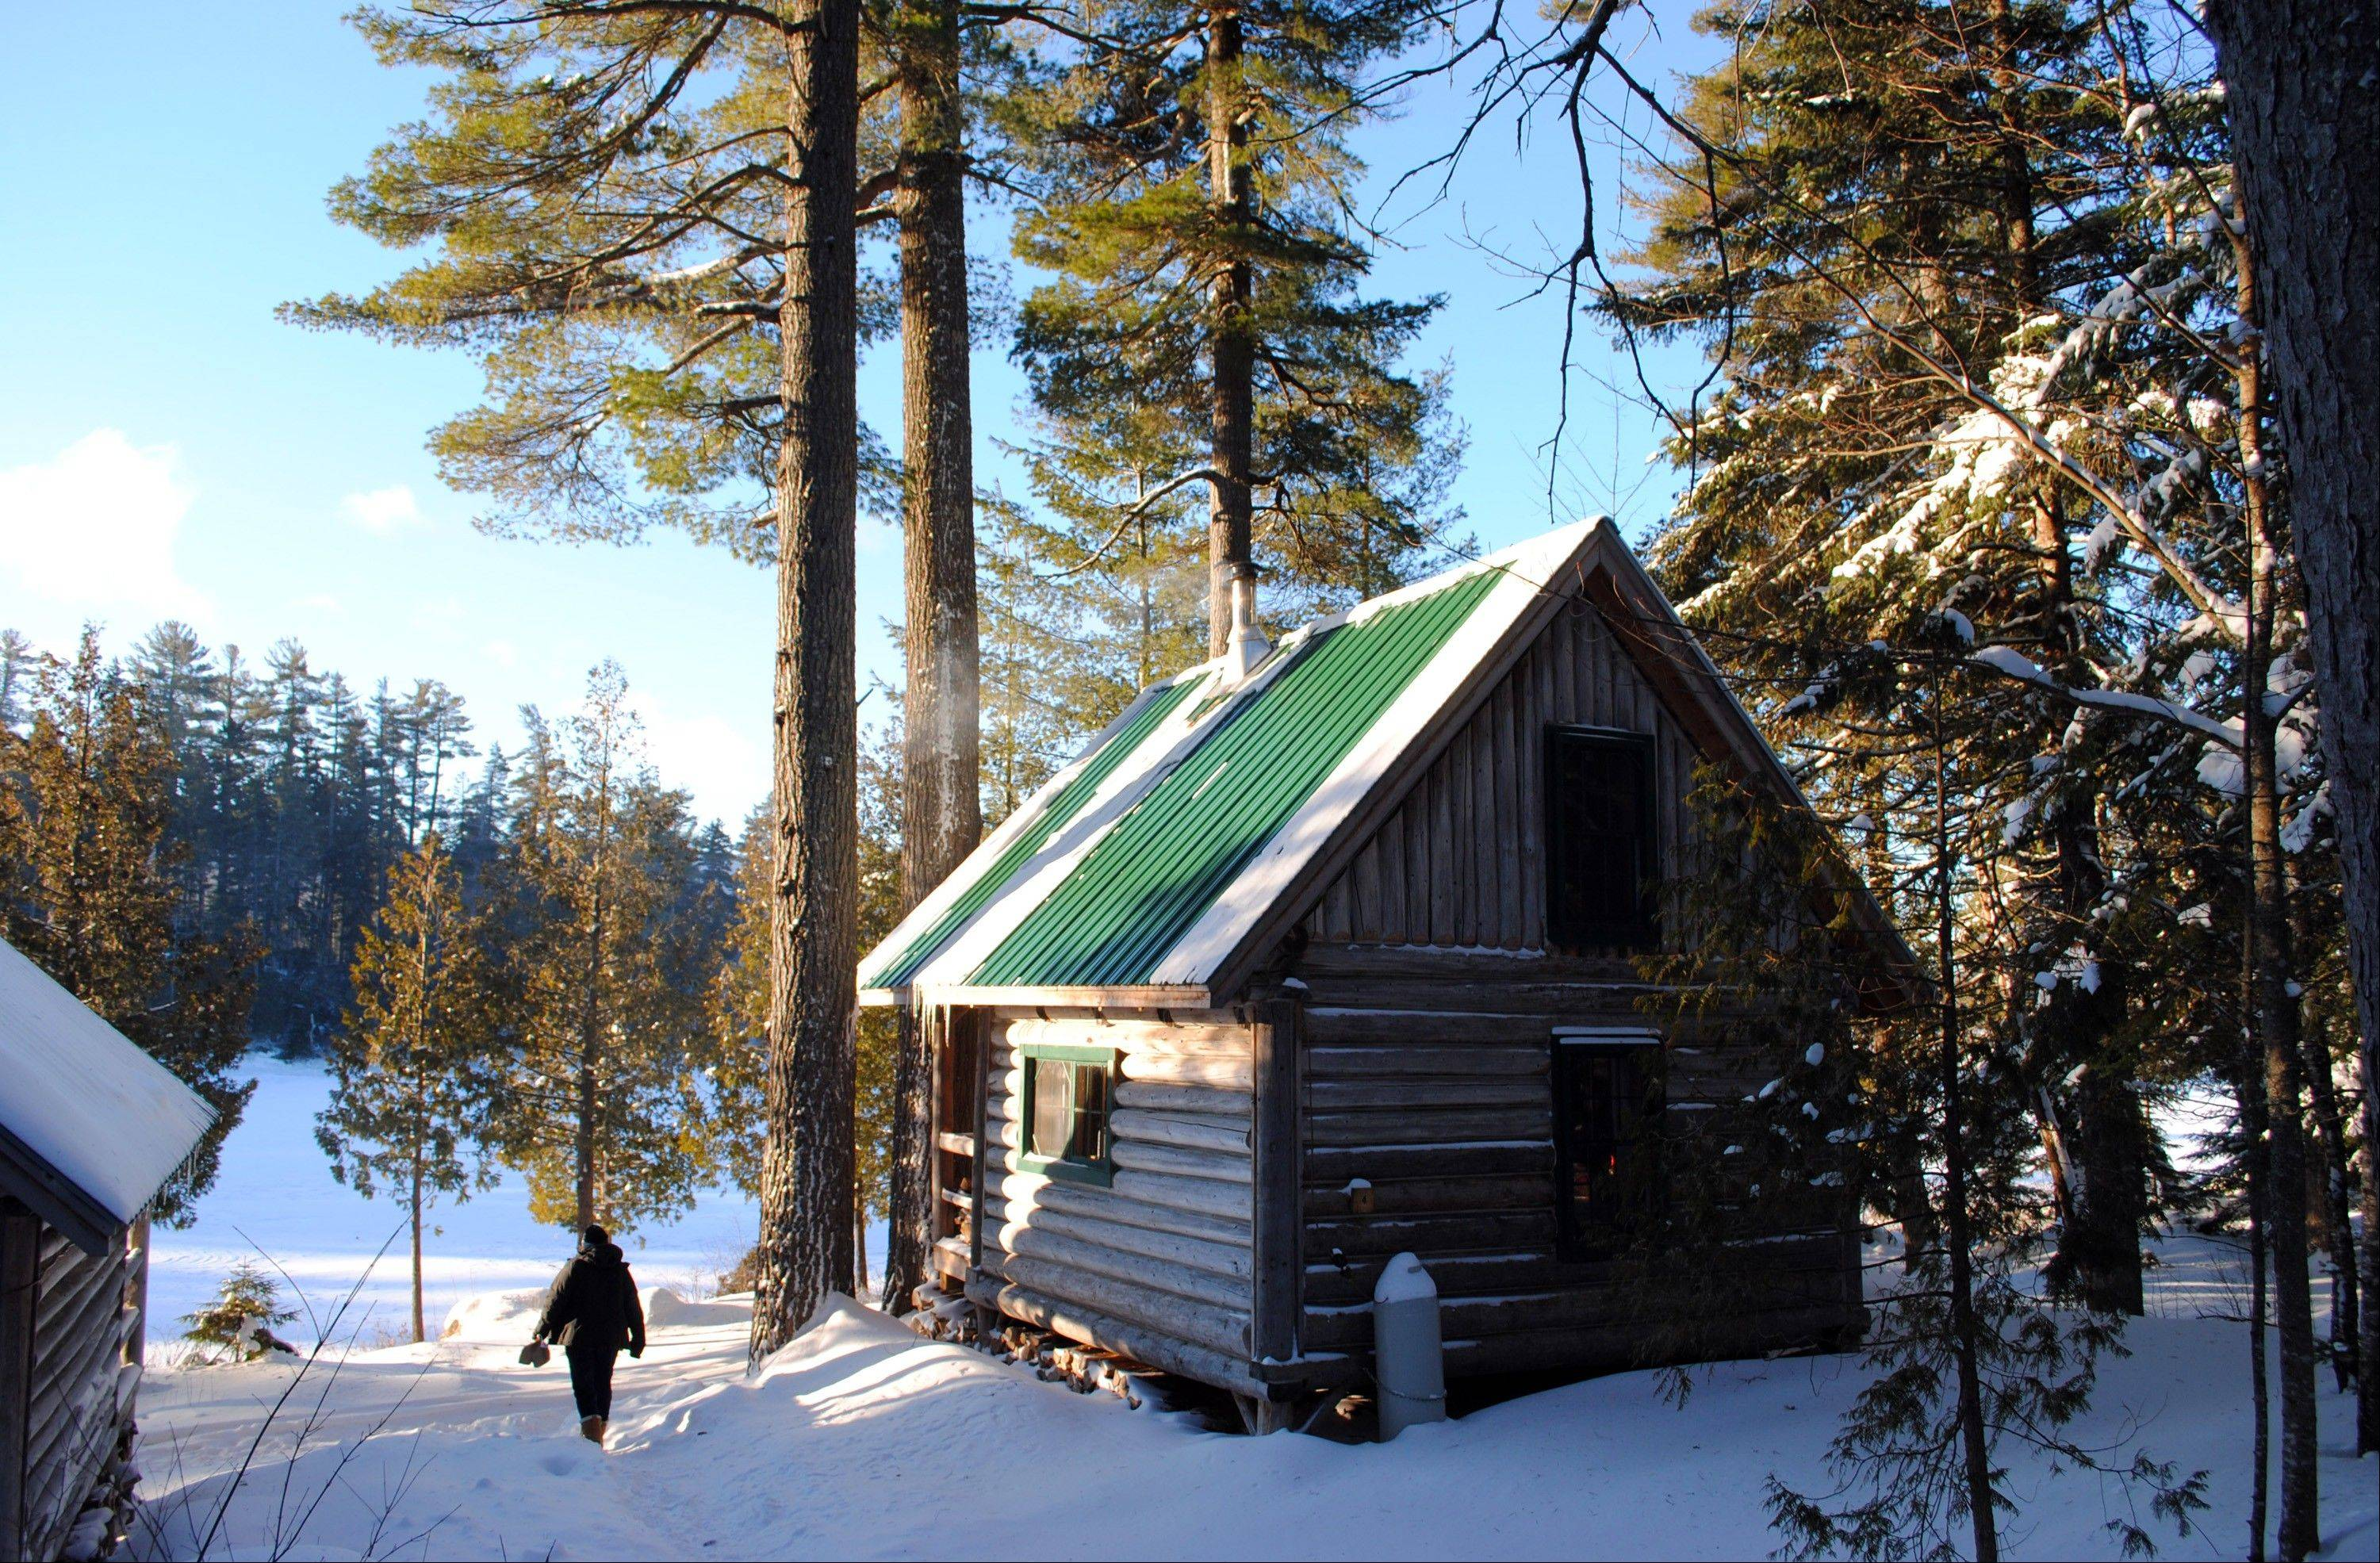 A rustic cabin in the snow at the Appalachian Mountain Club's Gorman Chairback Lodge near Greenville, Maine.